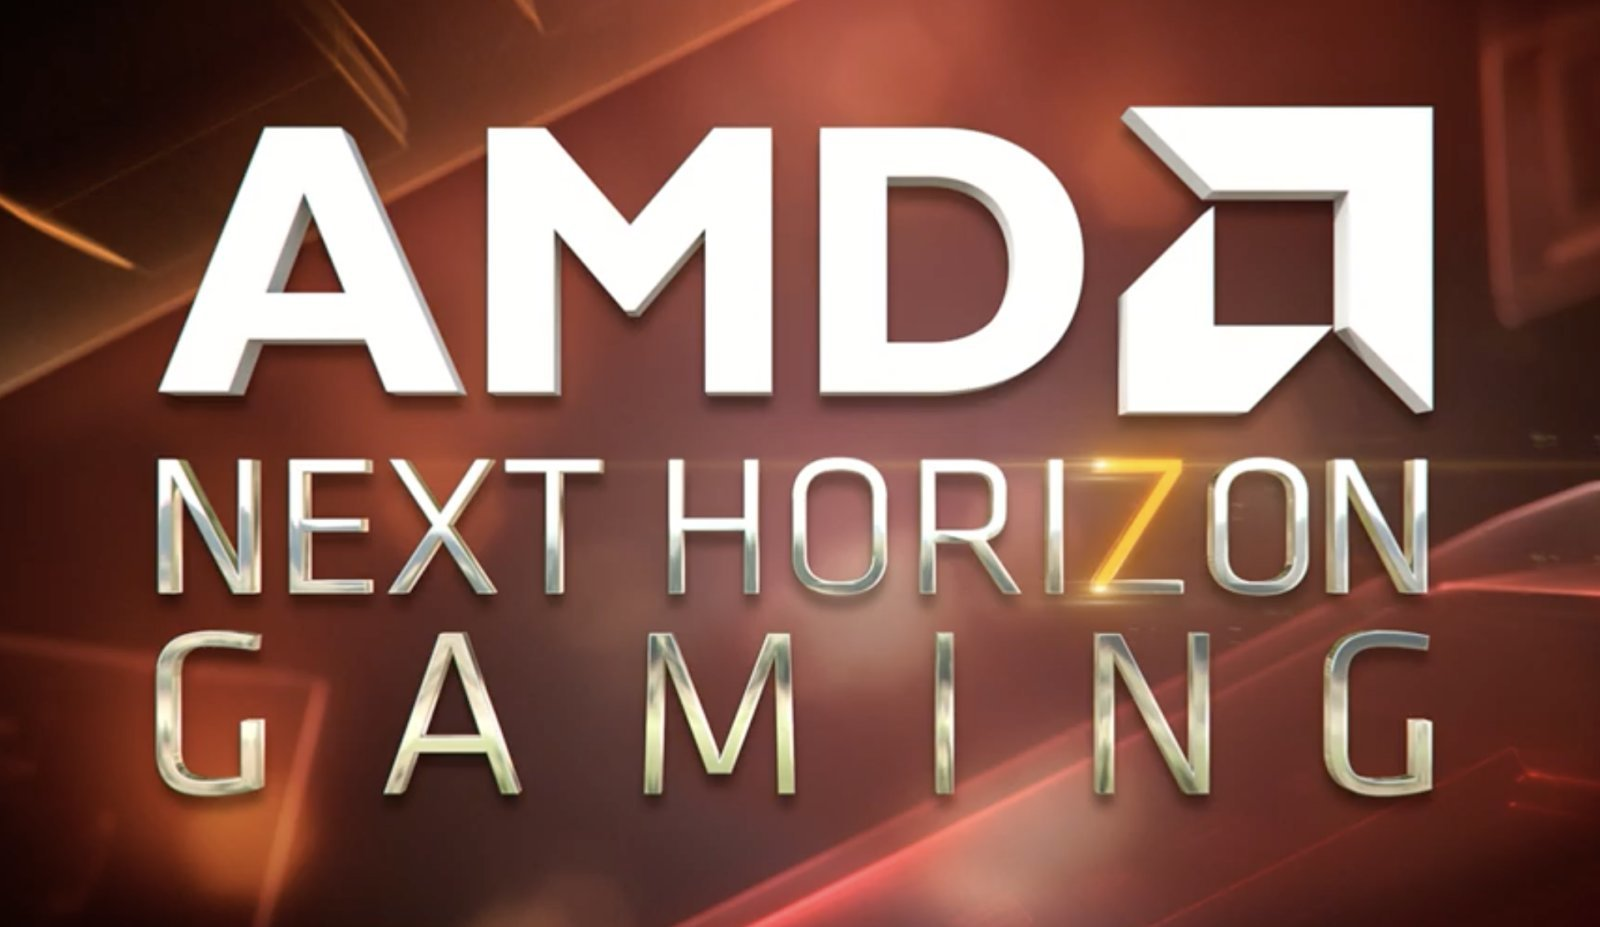 https://xgm.guru/p/world-of-insanity/e3-2019-amd